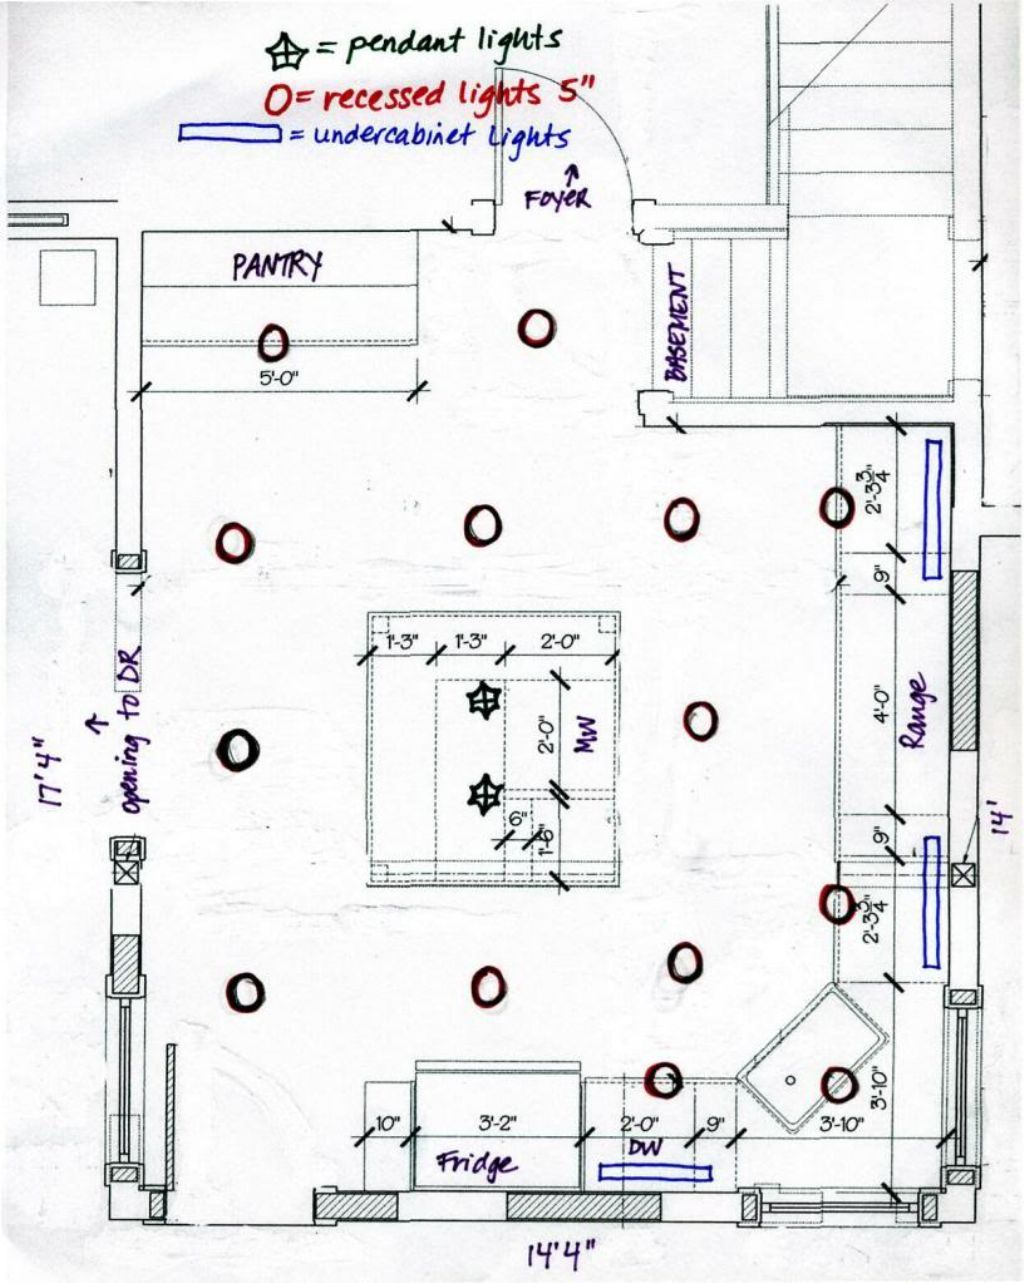 DIAGRAM] Wiring Diagram For Kitchen Spotlights FULL Version HD Quality  Kitchen Spotlights - MEDIAGRAME.ARKIS.ITarkis.it